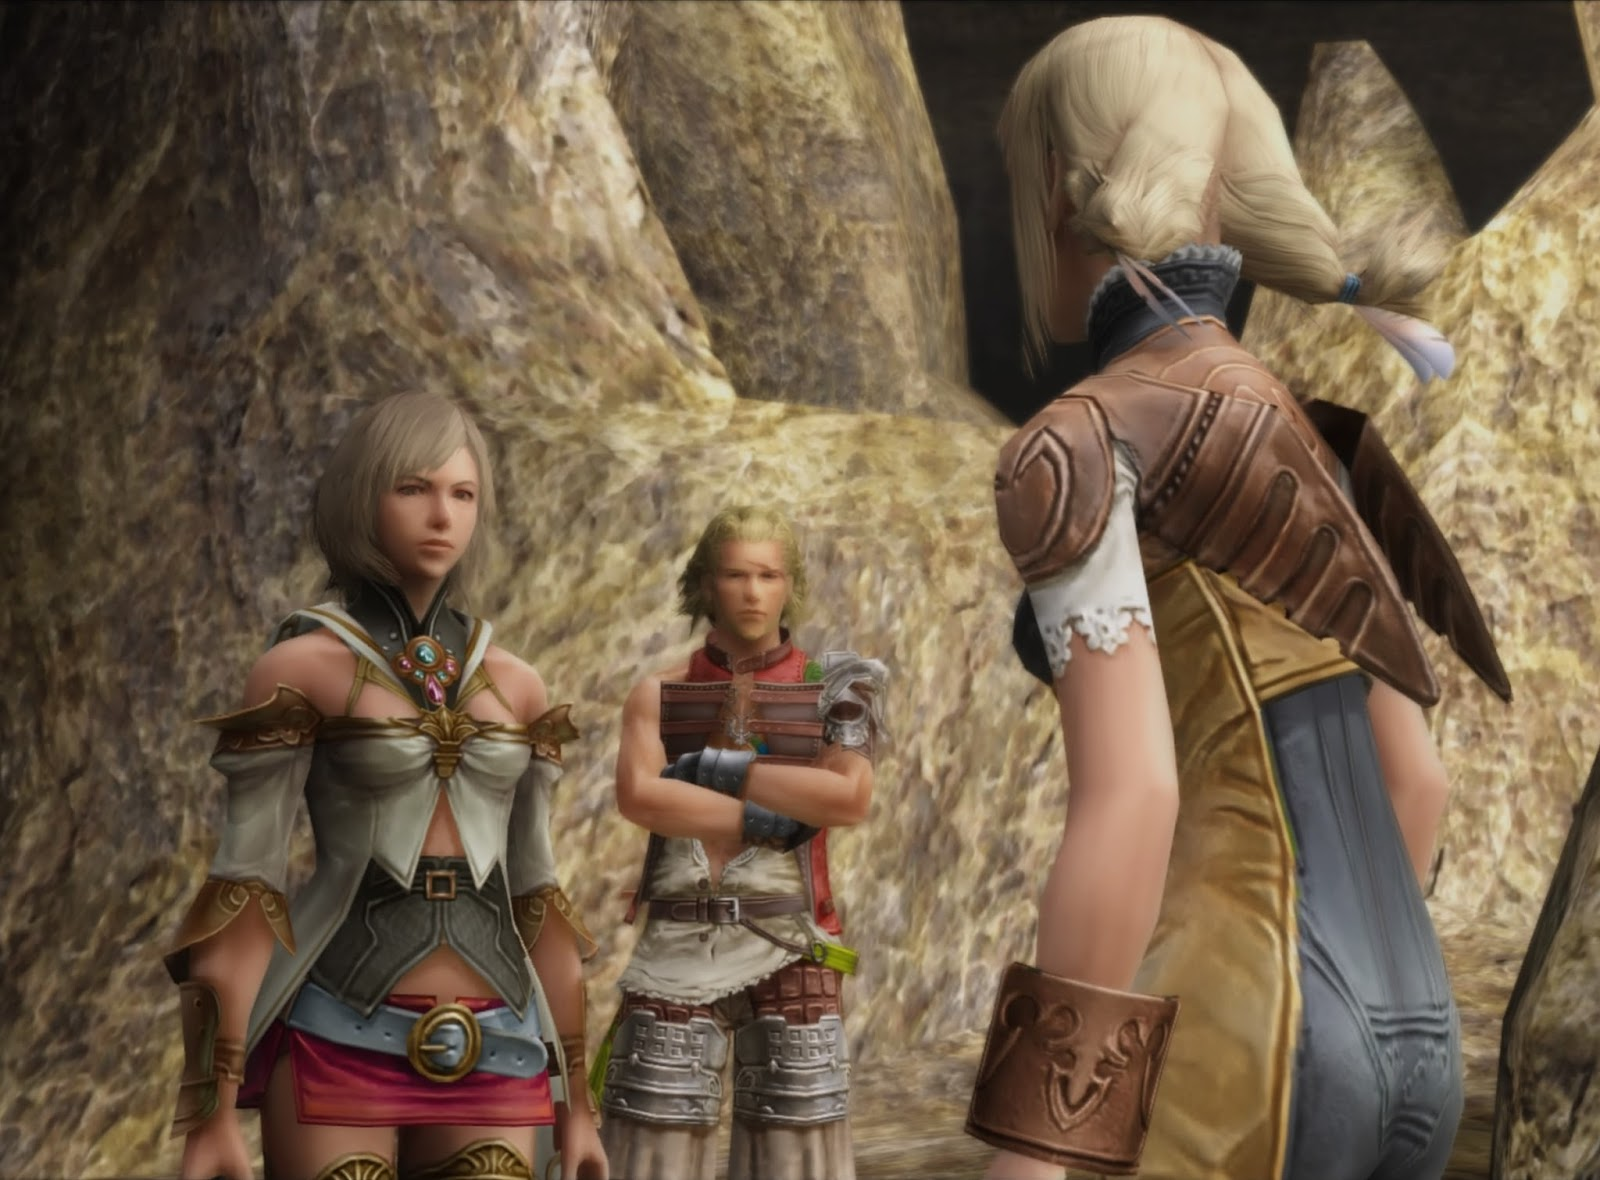 Final Fantasy XII: The Zodiac Age is the best Final Fantasy done even better